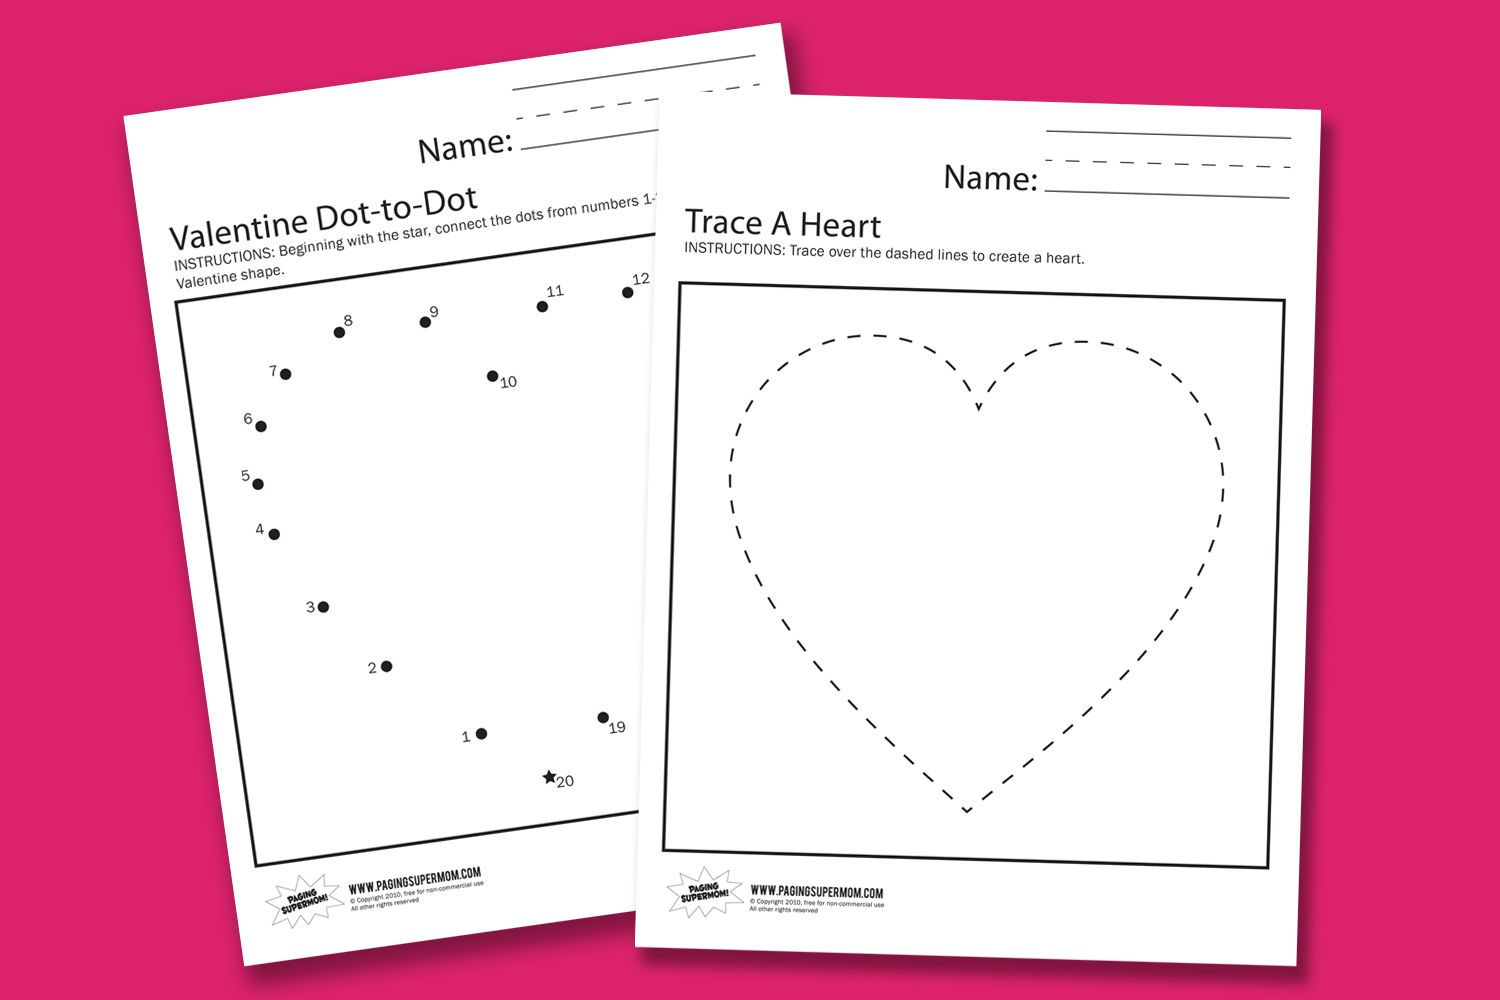 worksheet Valentine Worksheets For Preschool 10 images about valentines kids crafts worksheets on pinterest for funny math and early learning